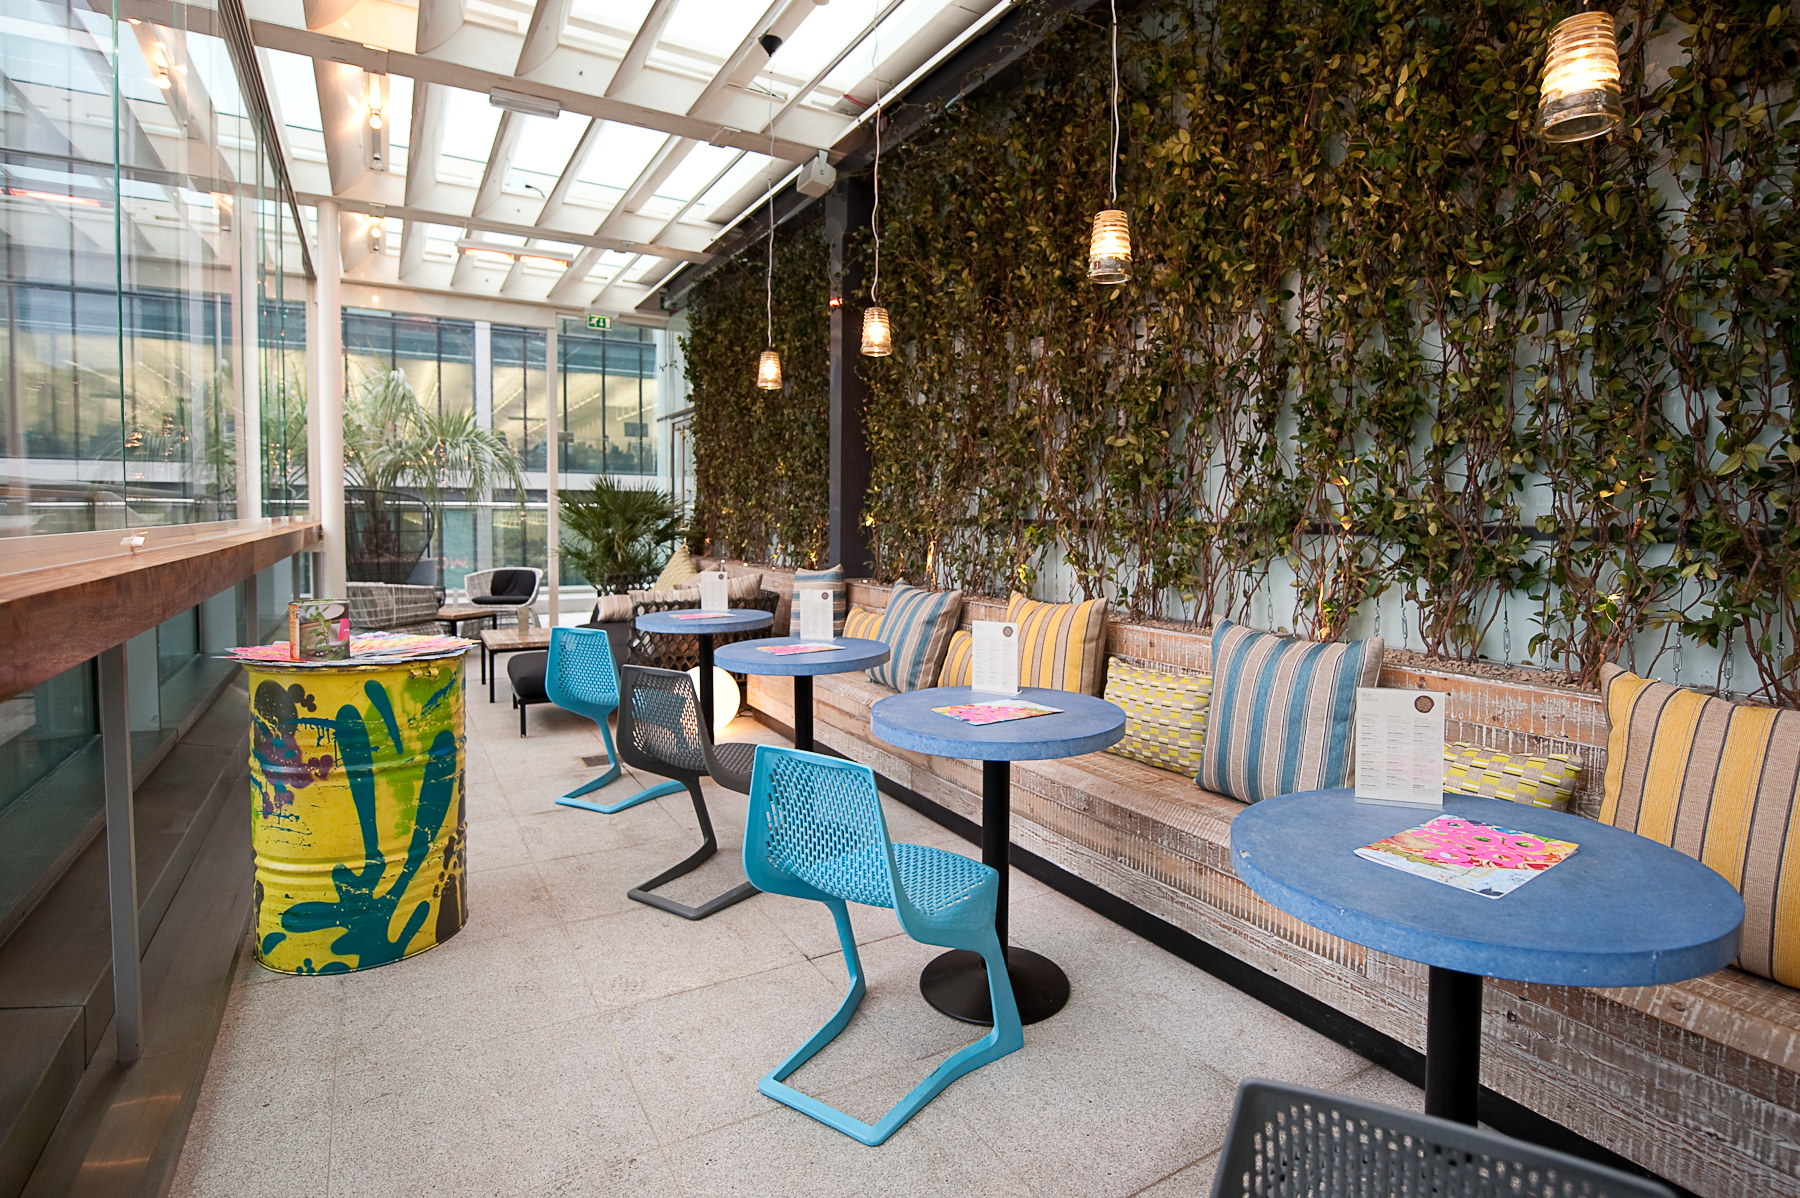 Wahaca Canary Wharf and Terrace Bar